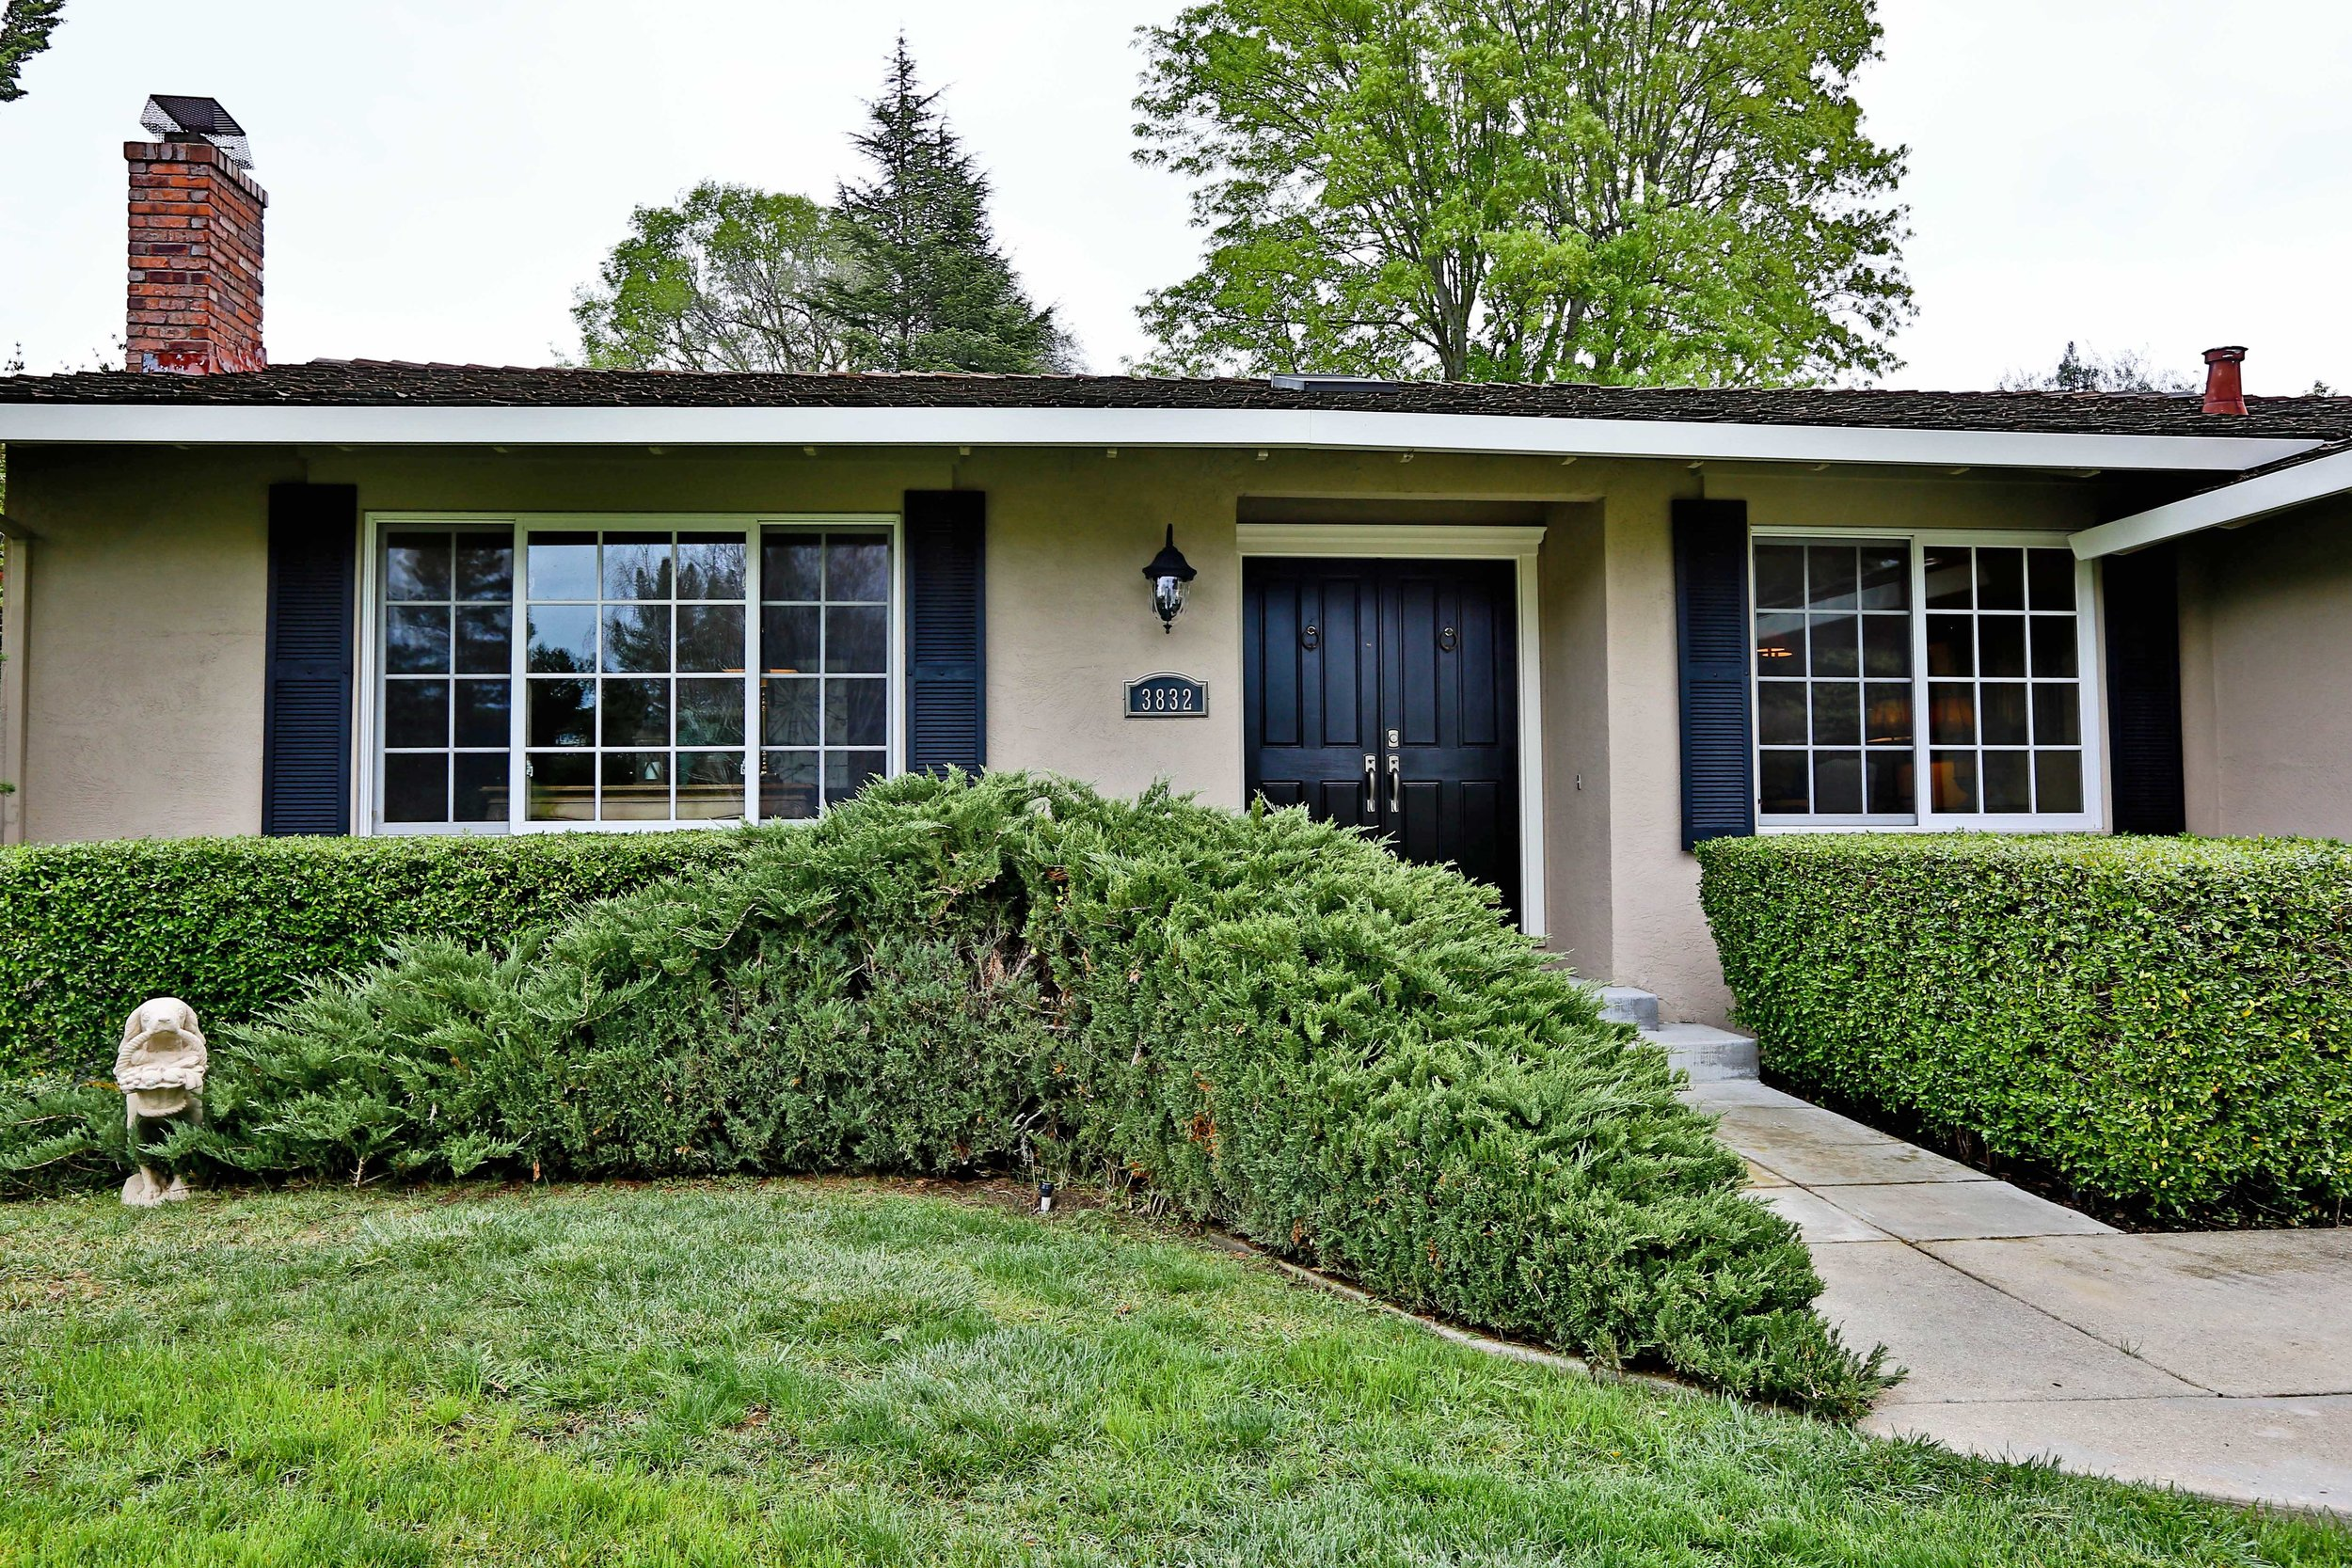 3832 via granada, moraga, ca  listed: $1,289,000 sold: $1,438,000 represented seller